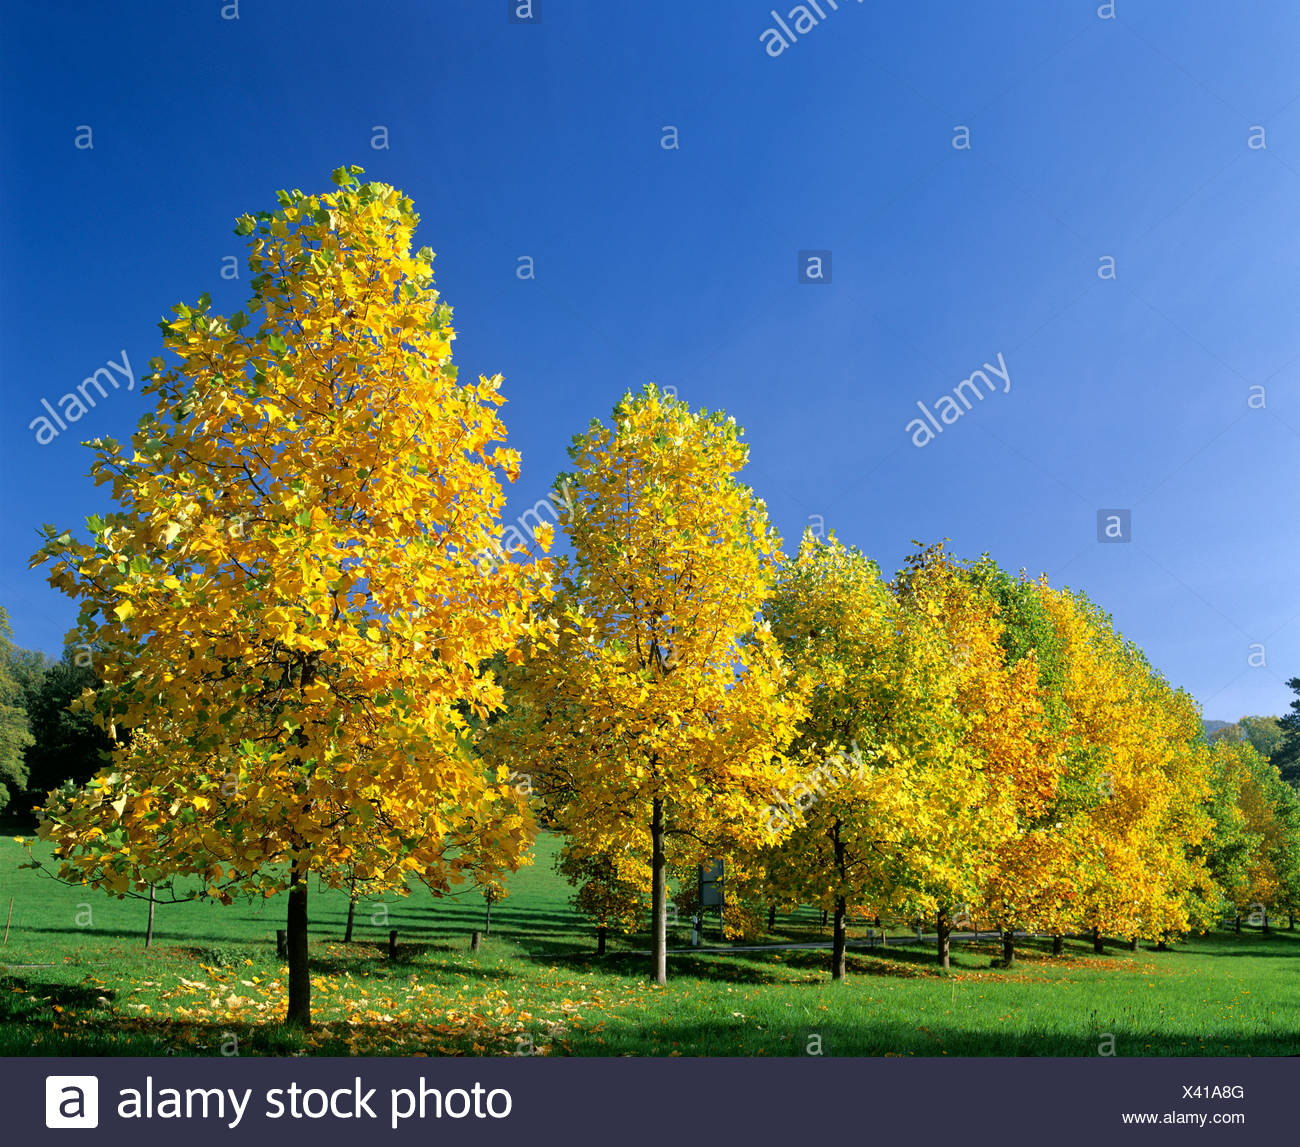 Young Maple trees (Acer) in autumn, autumnal foliage, Germany, Europe - Stock Image